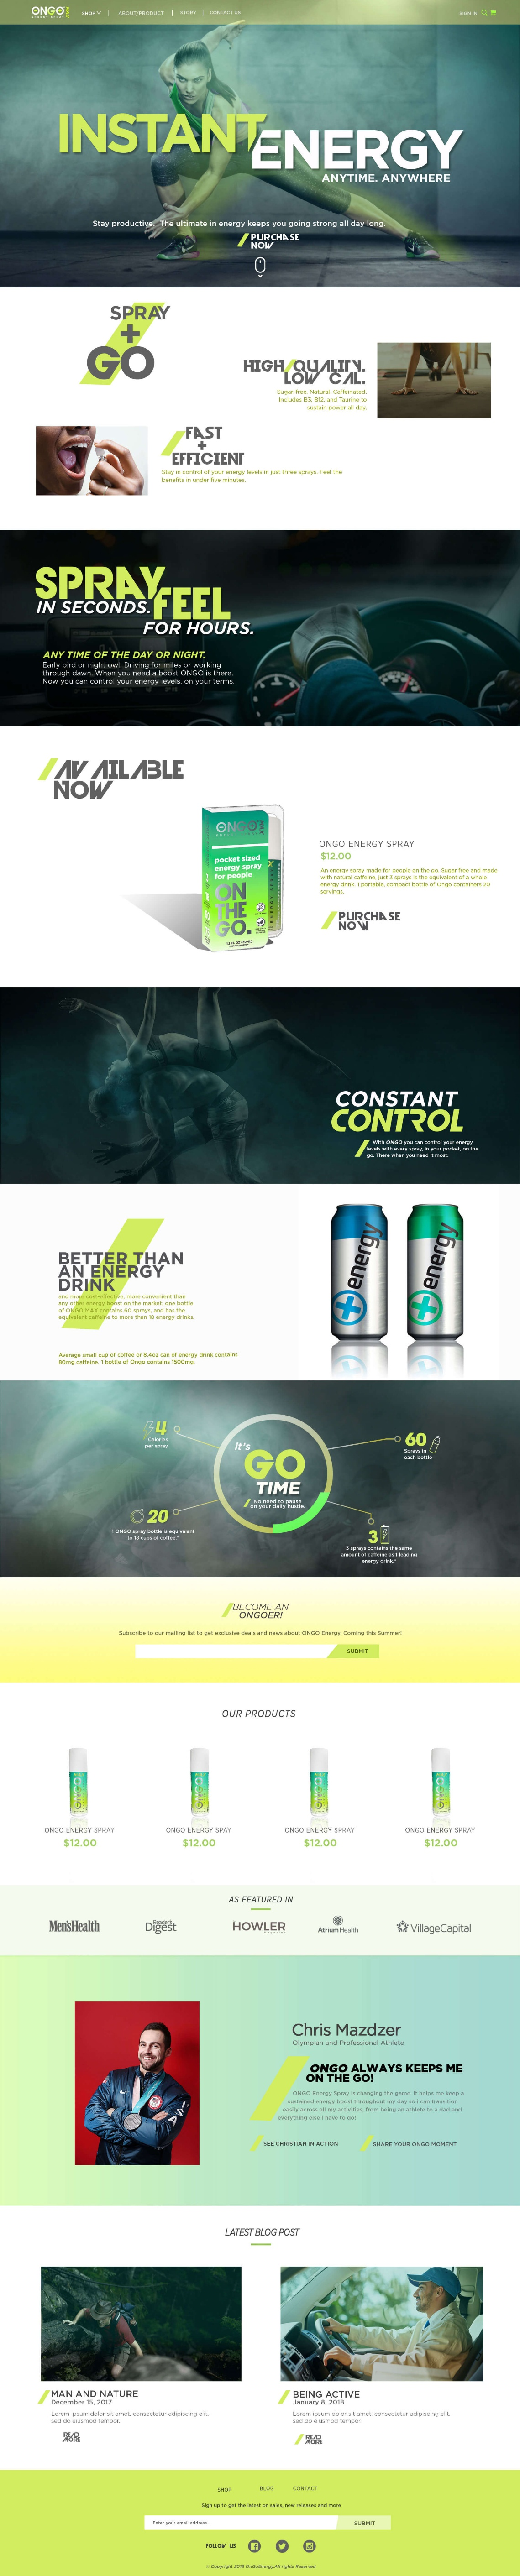 ON GO ENERGY by Rowena Ramos 1 716719 - Freelancer on Guru